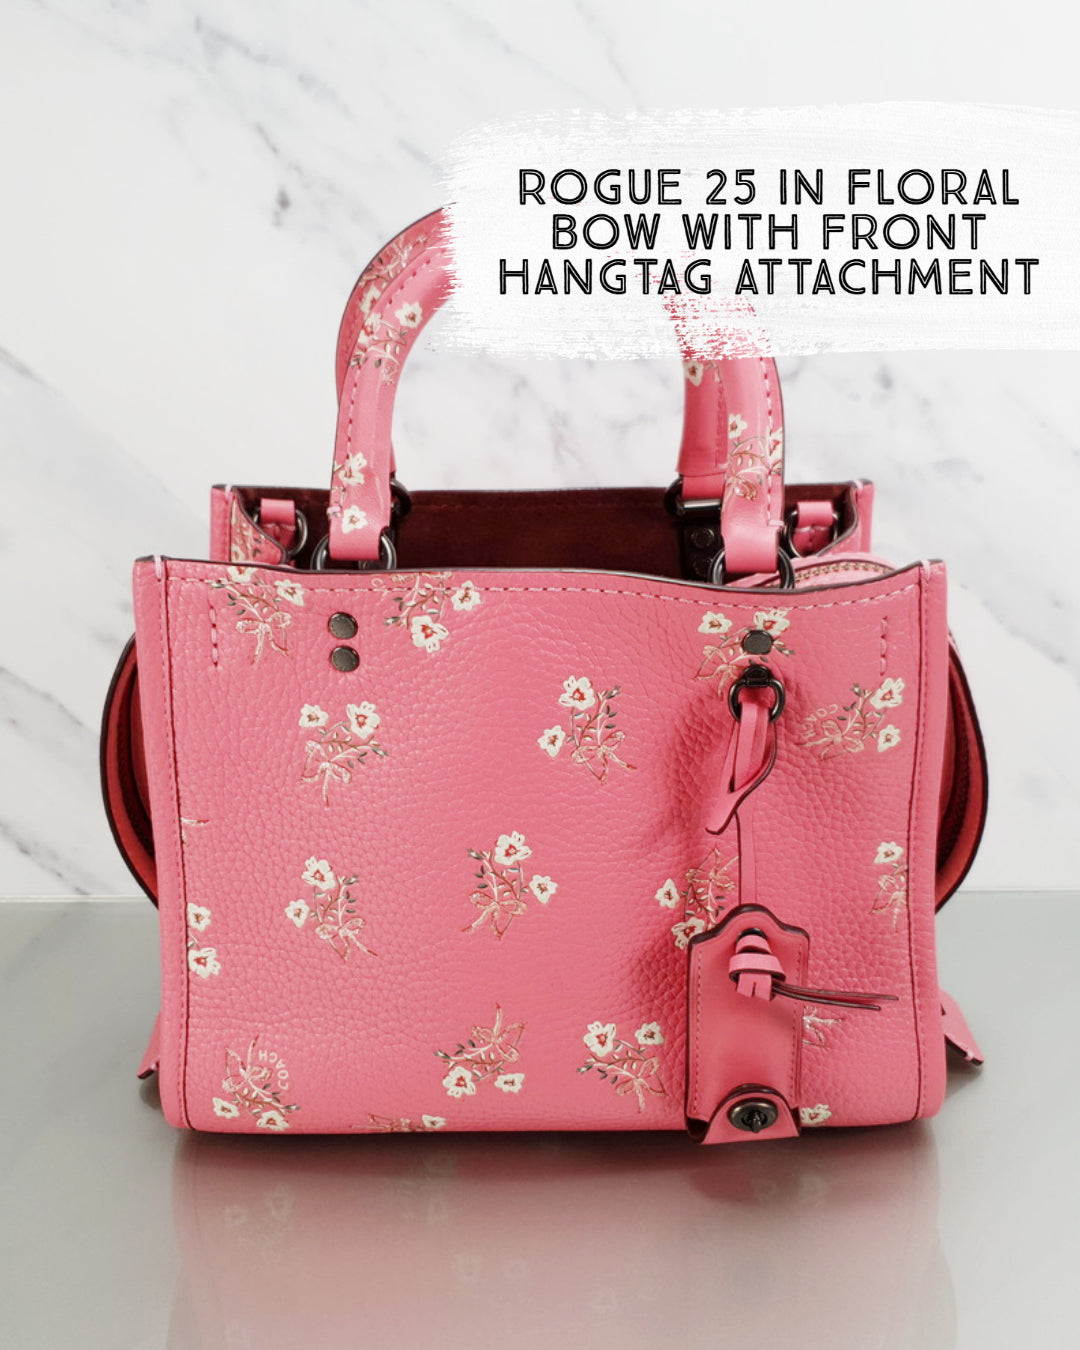 Coach 1941 Rogue 25 in Pink Floral Bow Leather Sample bag Handbag